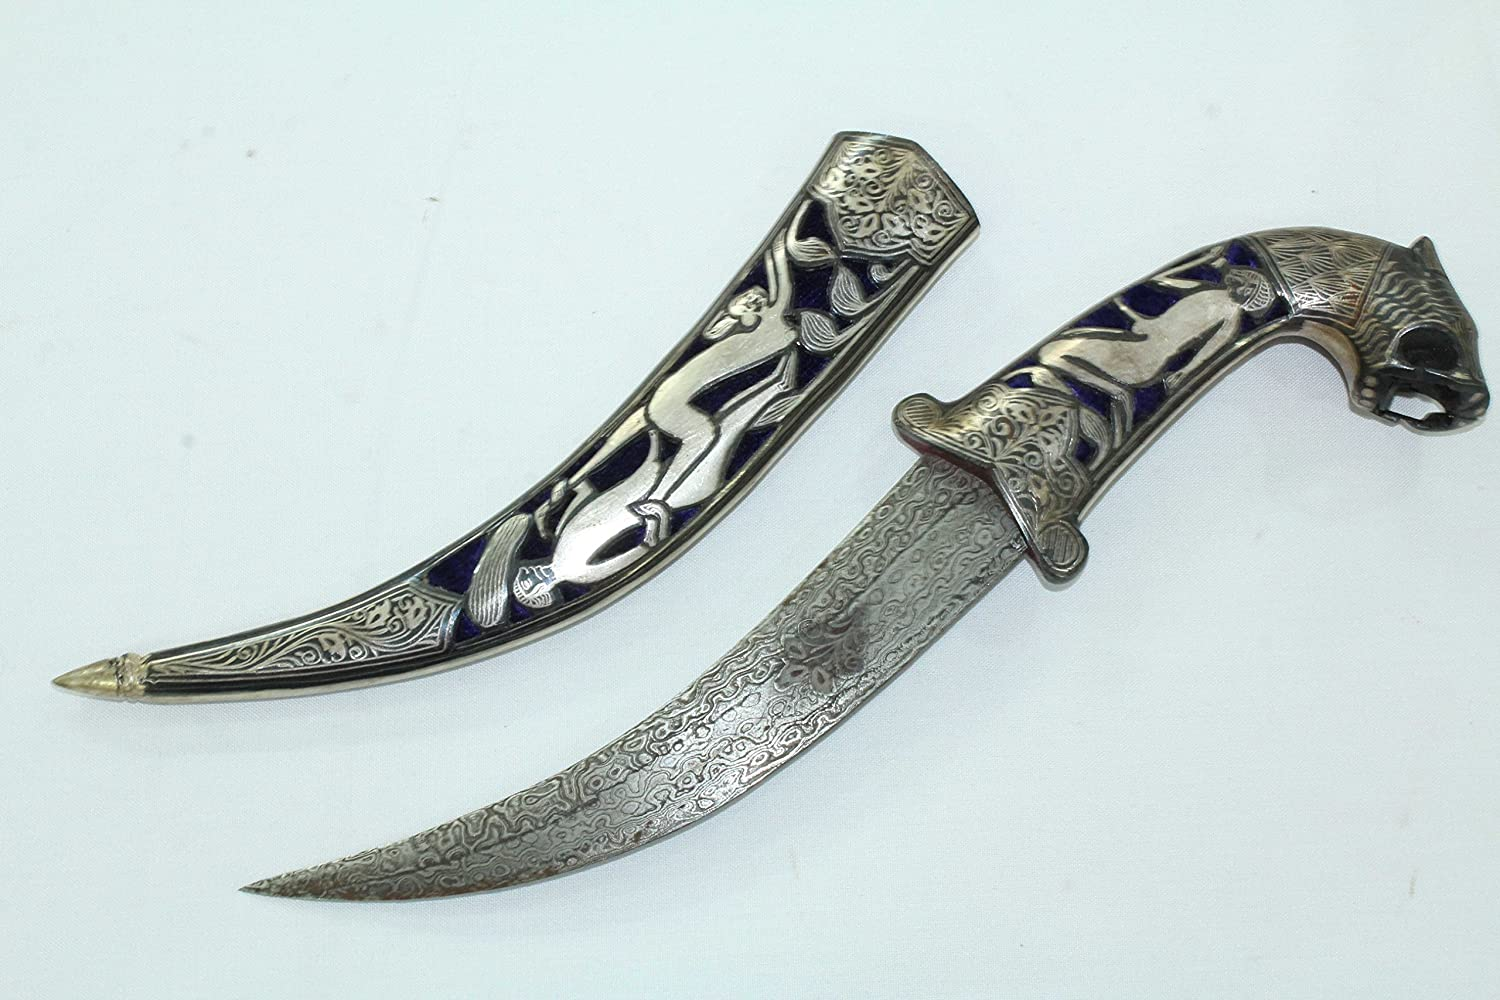 Amazon.com: Rajasthan Gems Dagger Knife Damascus blade silver wire ...